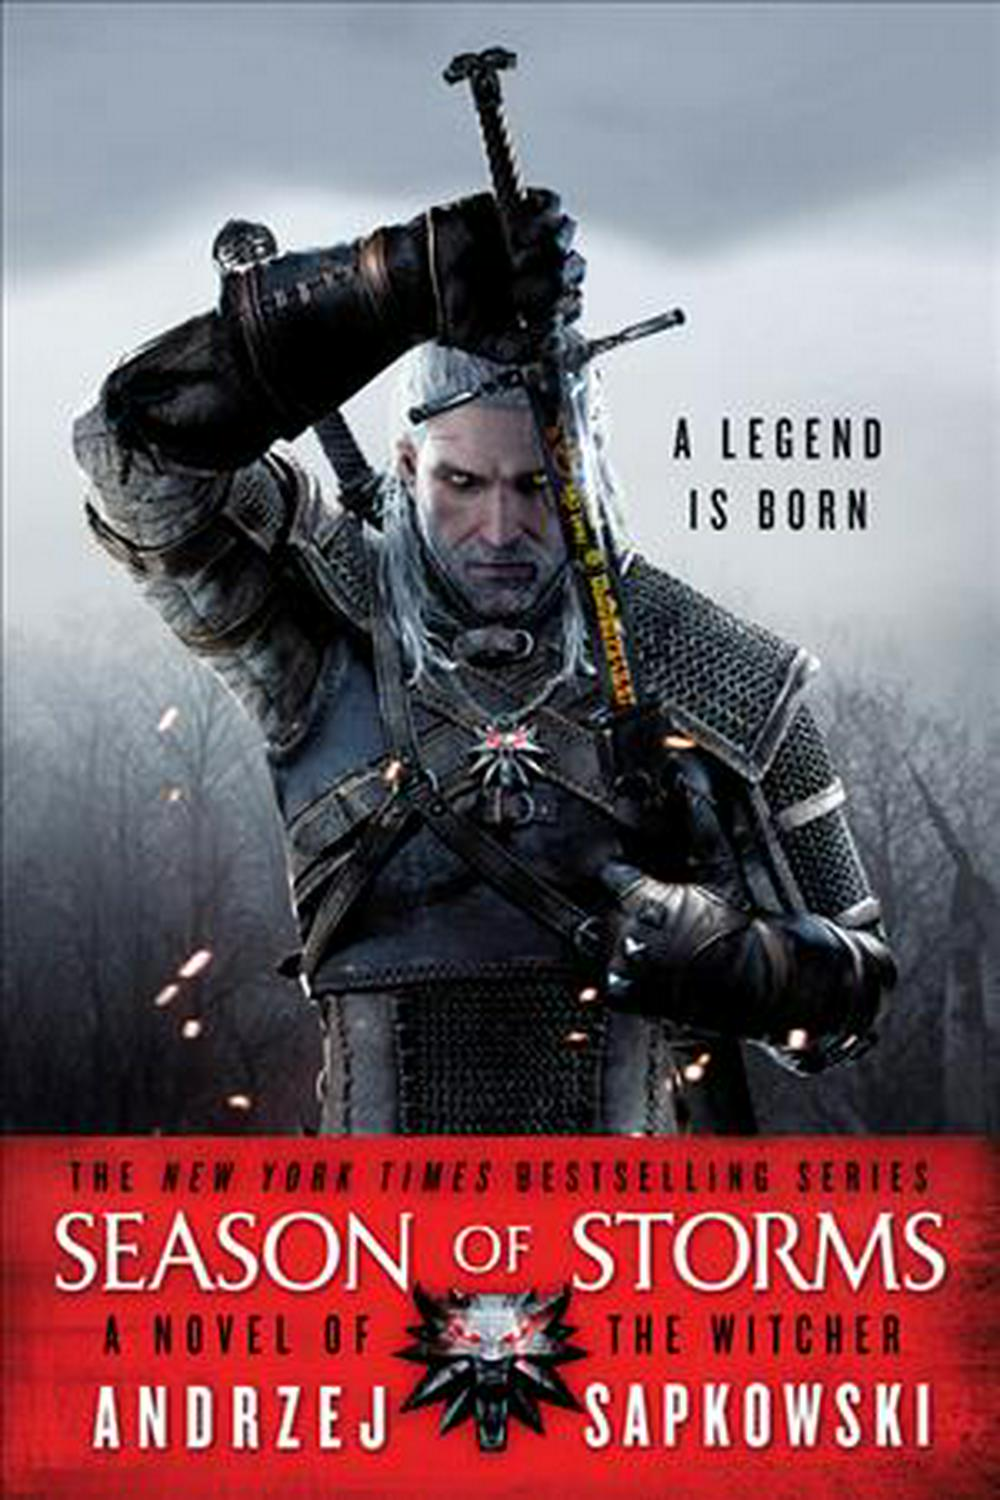 Season of Storms (Witcher)